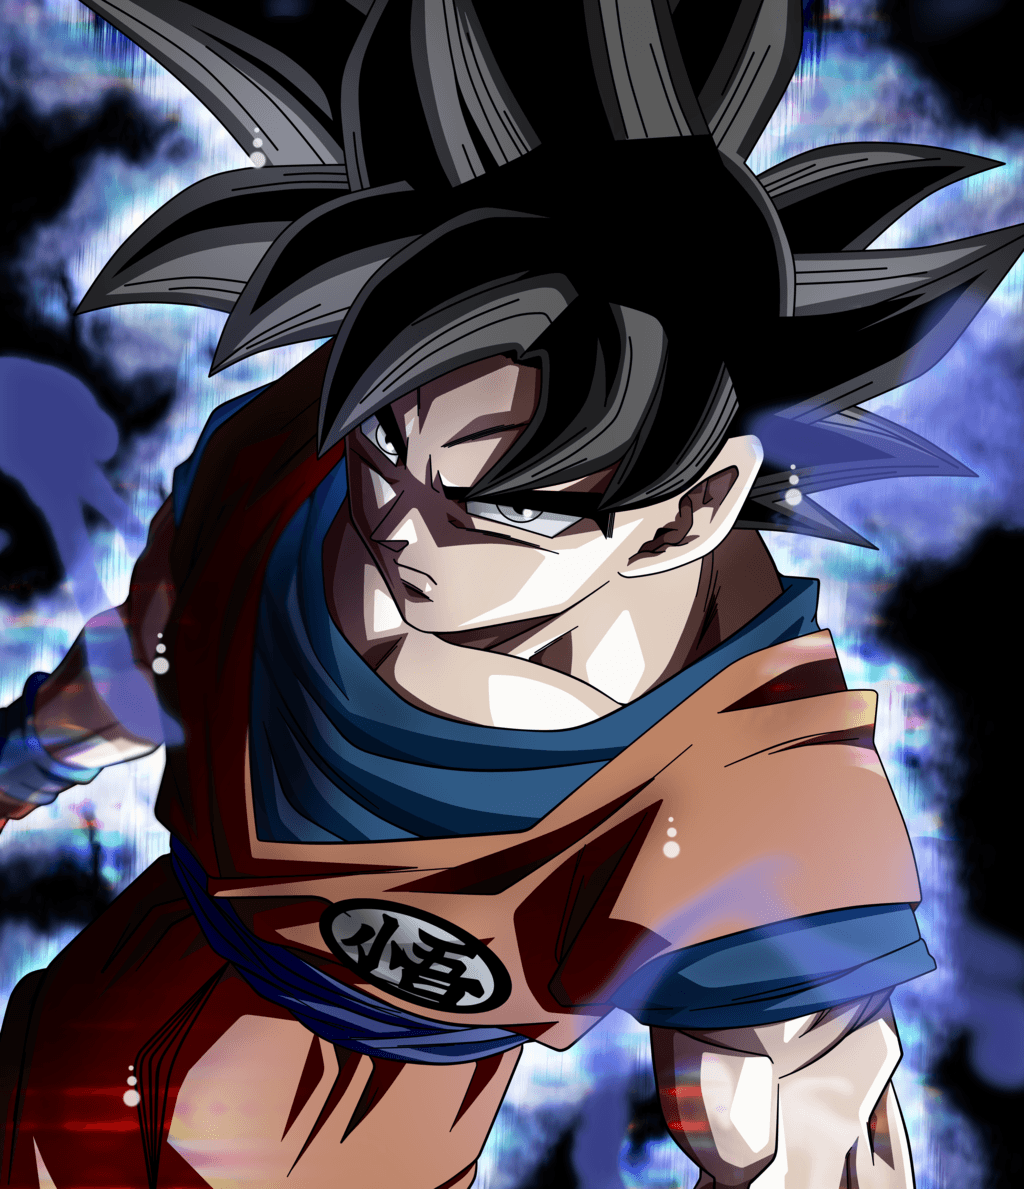 Ultra Instinct Dragon Ball Super Wallpaper: Goku Ultra Instinct Wallpapers